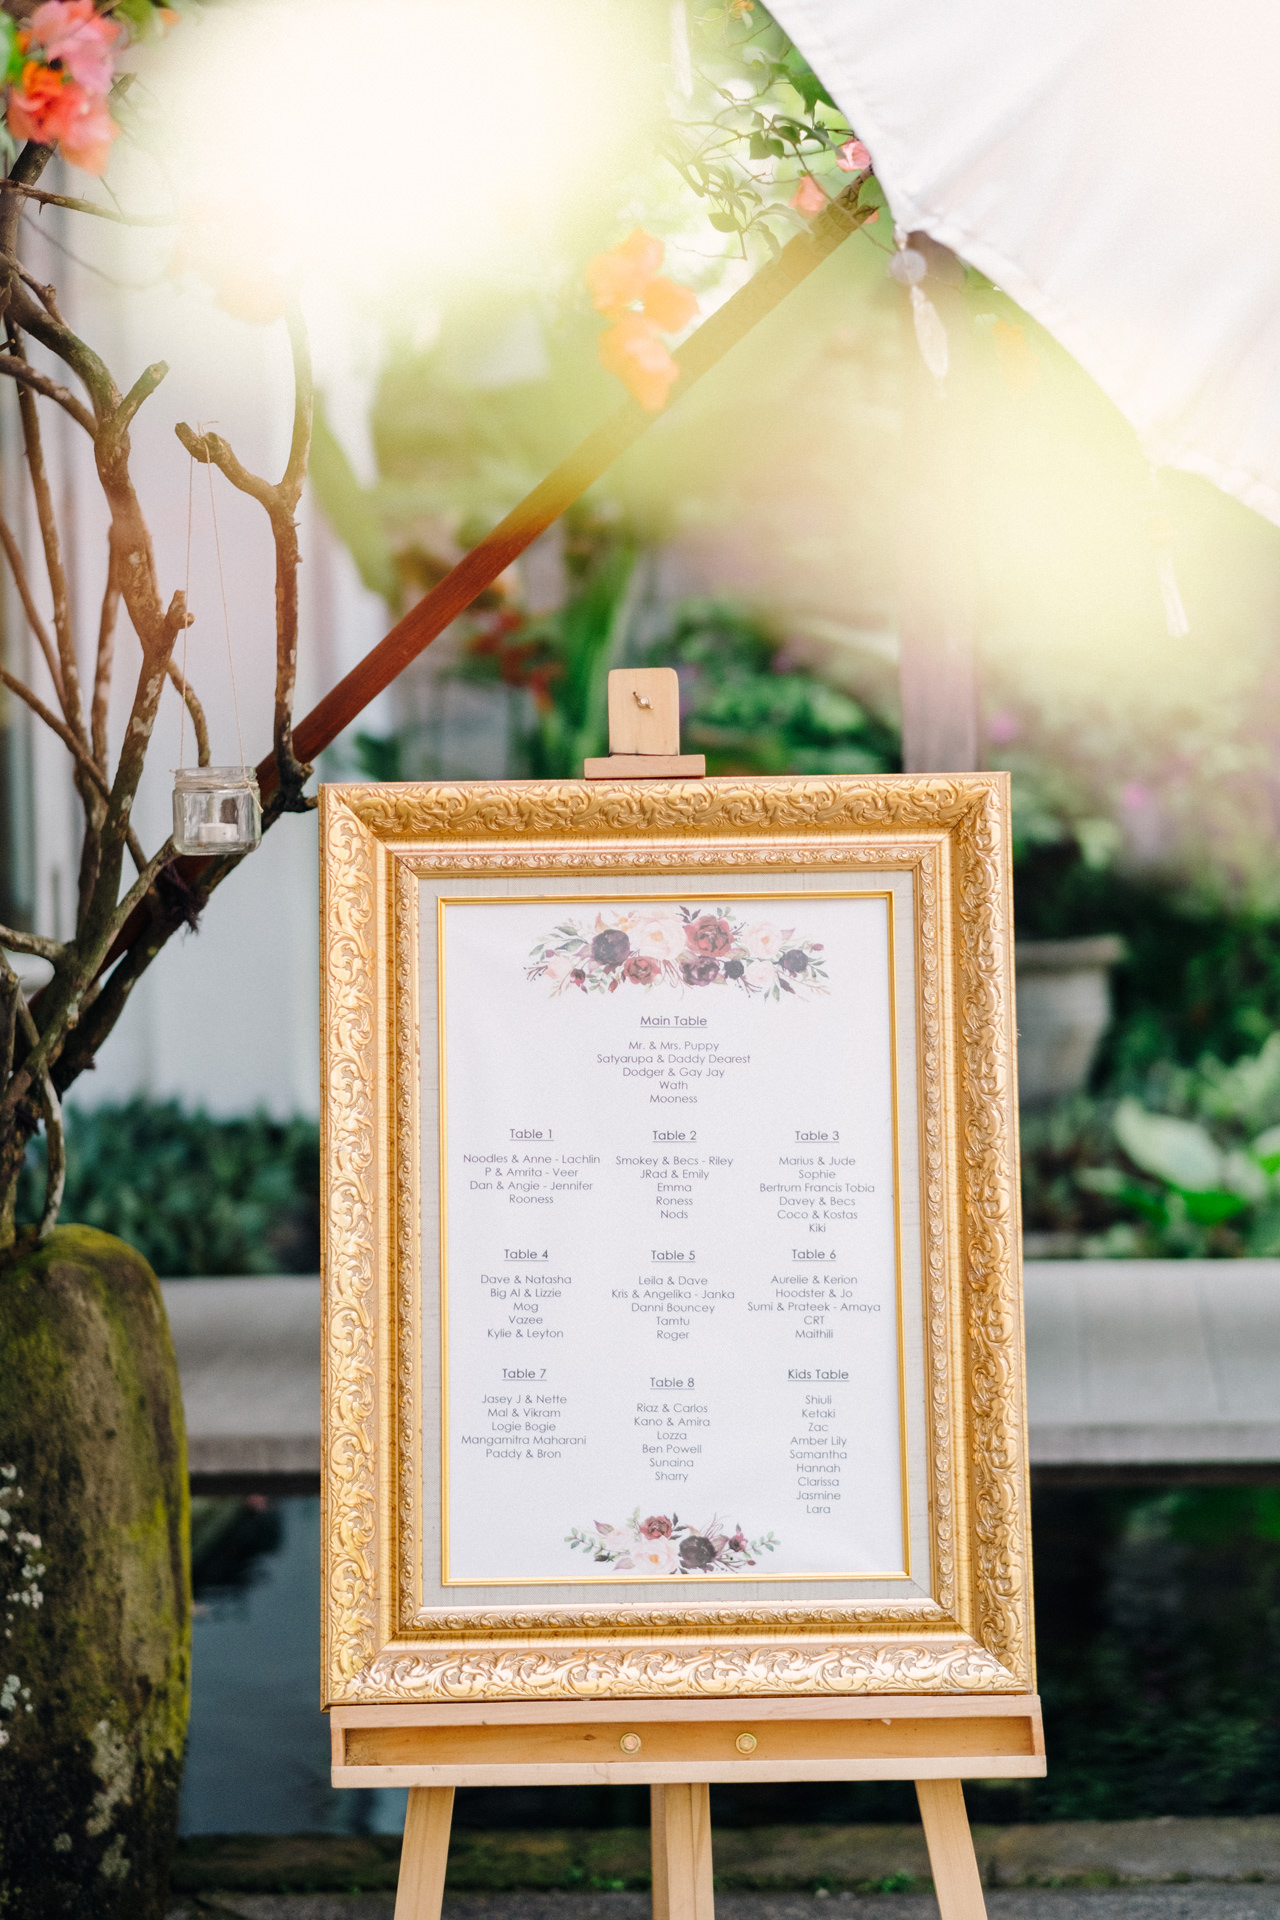 P&C: Getting Married in Bali 1